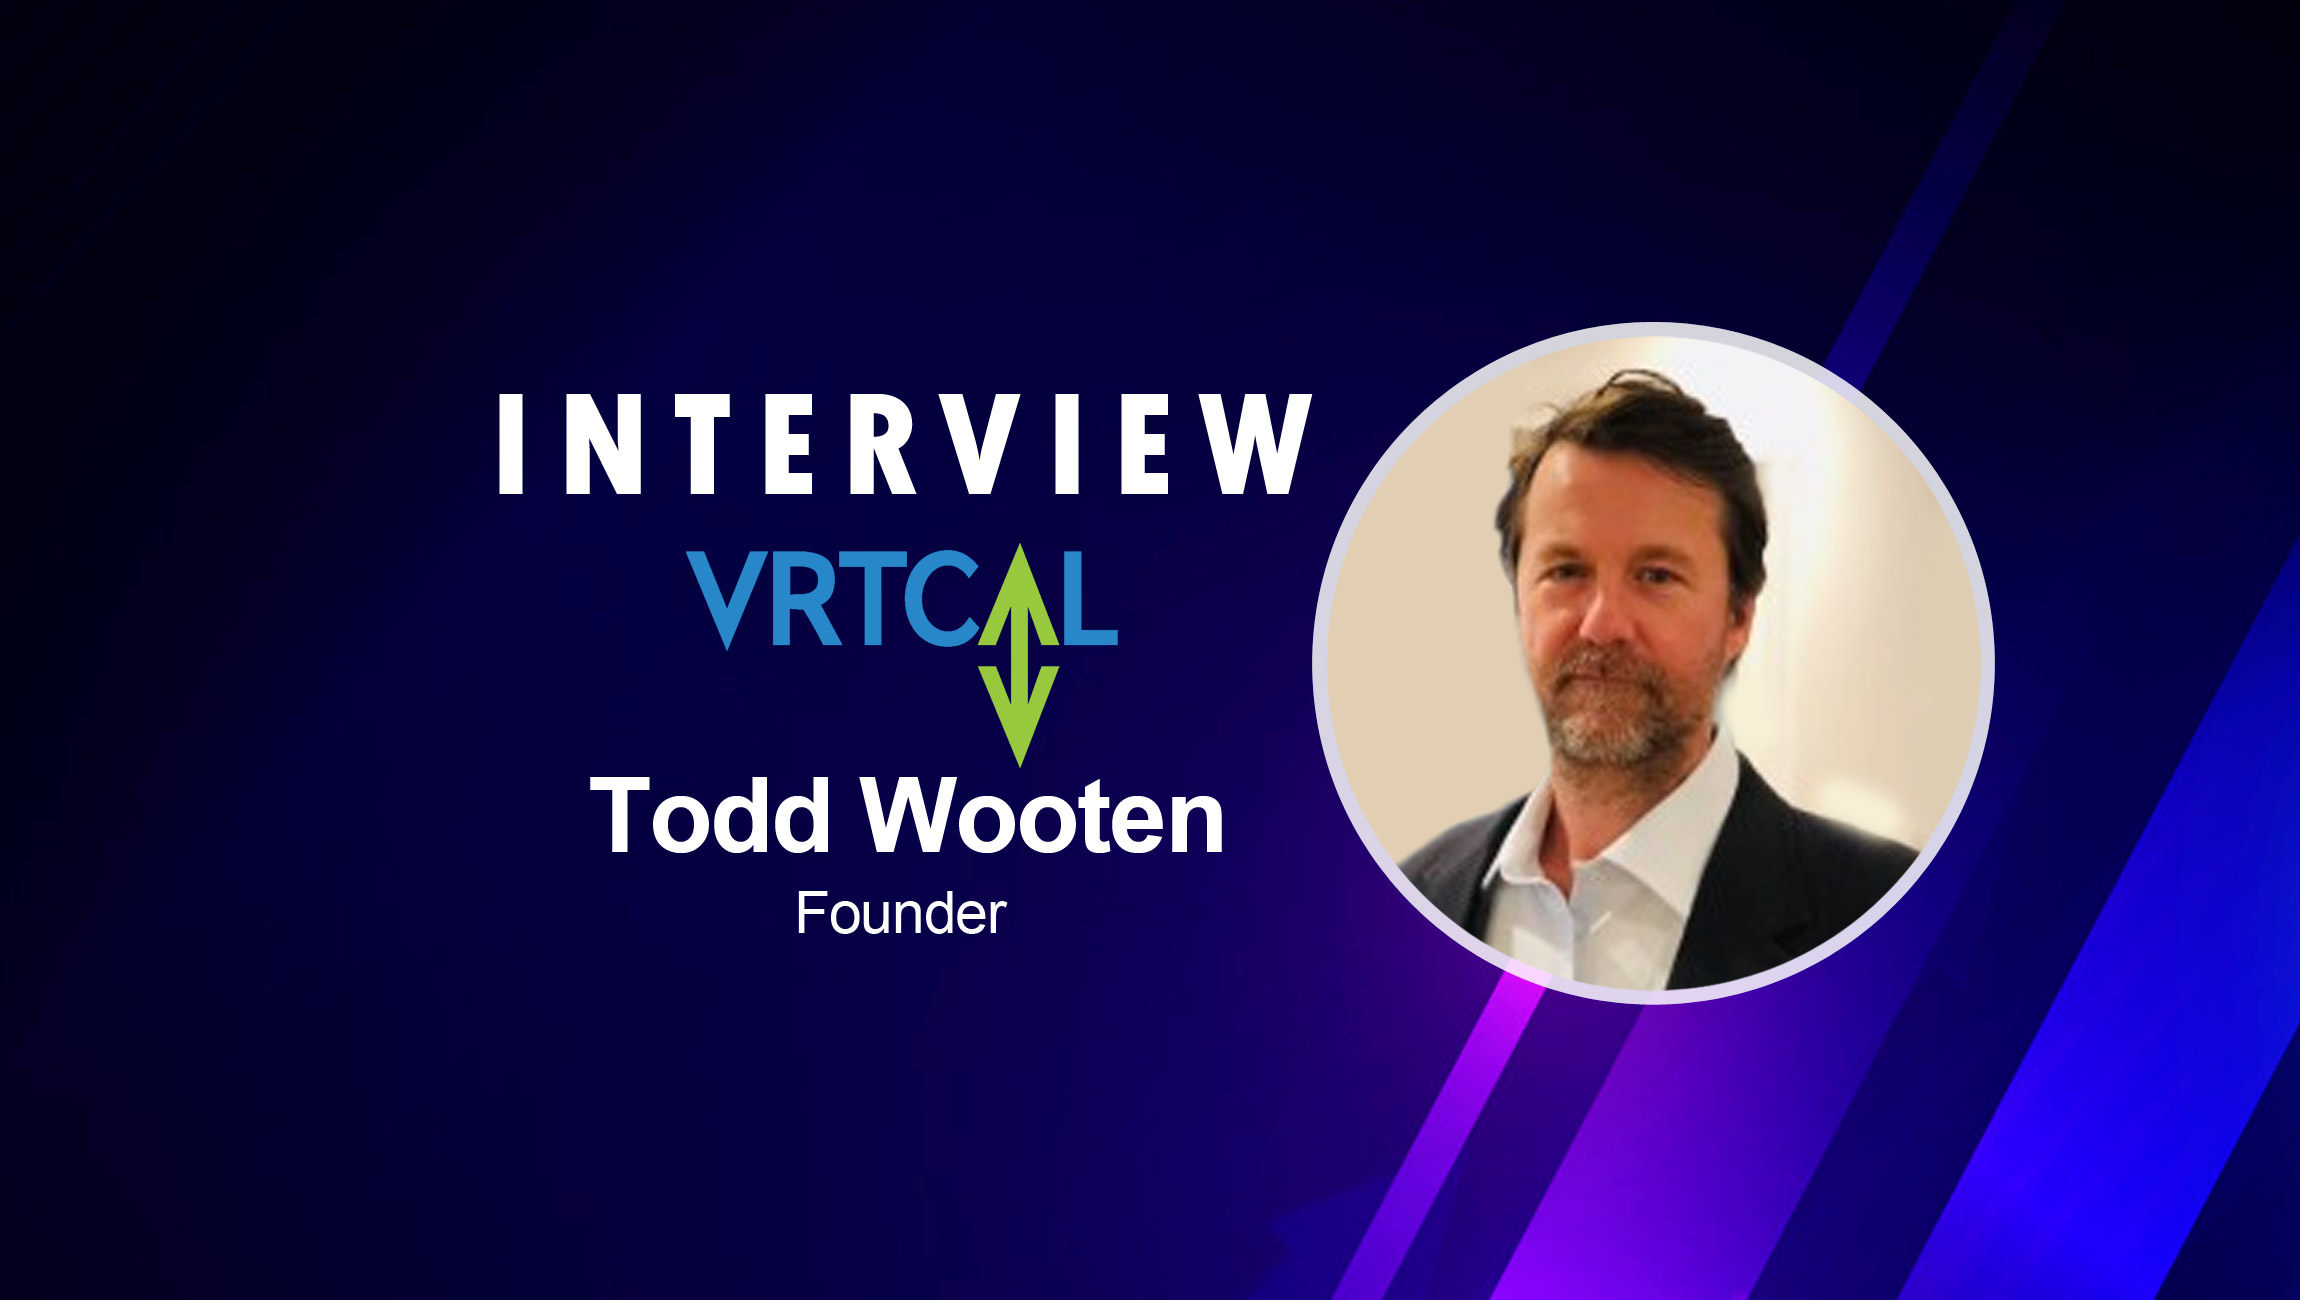 SalesTechStar Interview with Todd Wooten, Founder and President of VRTCAL